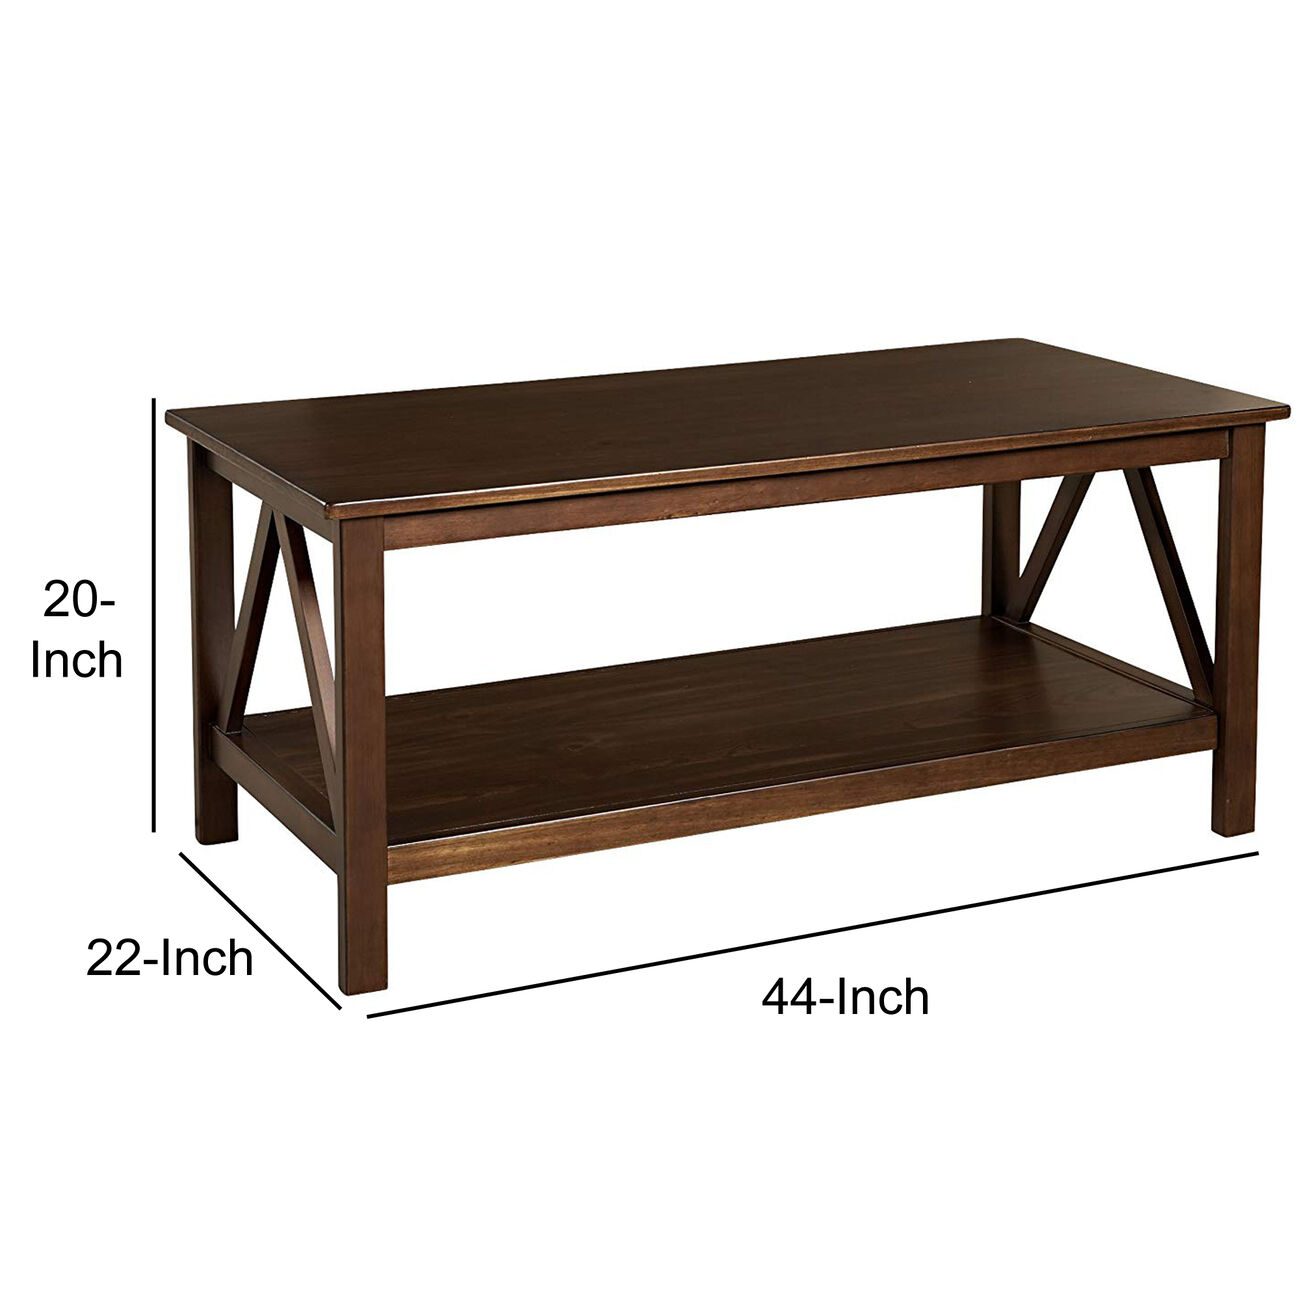 Wooden Rectangular Coffee Table with Inverted V Design Sides, Brown